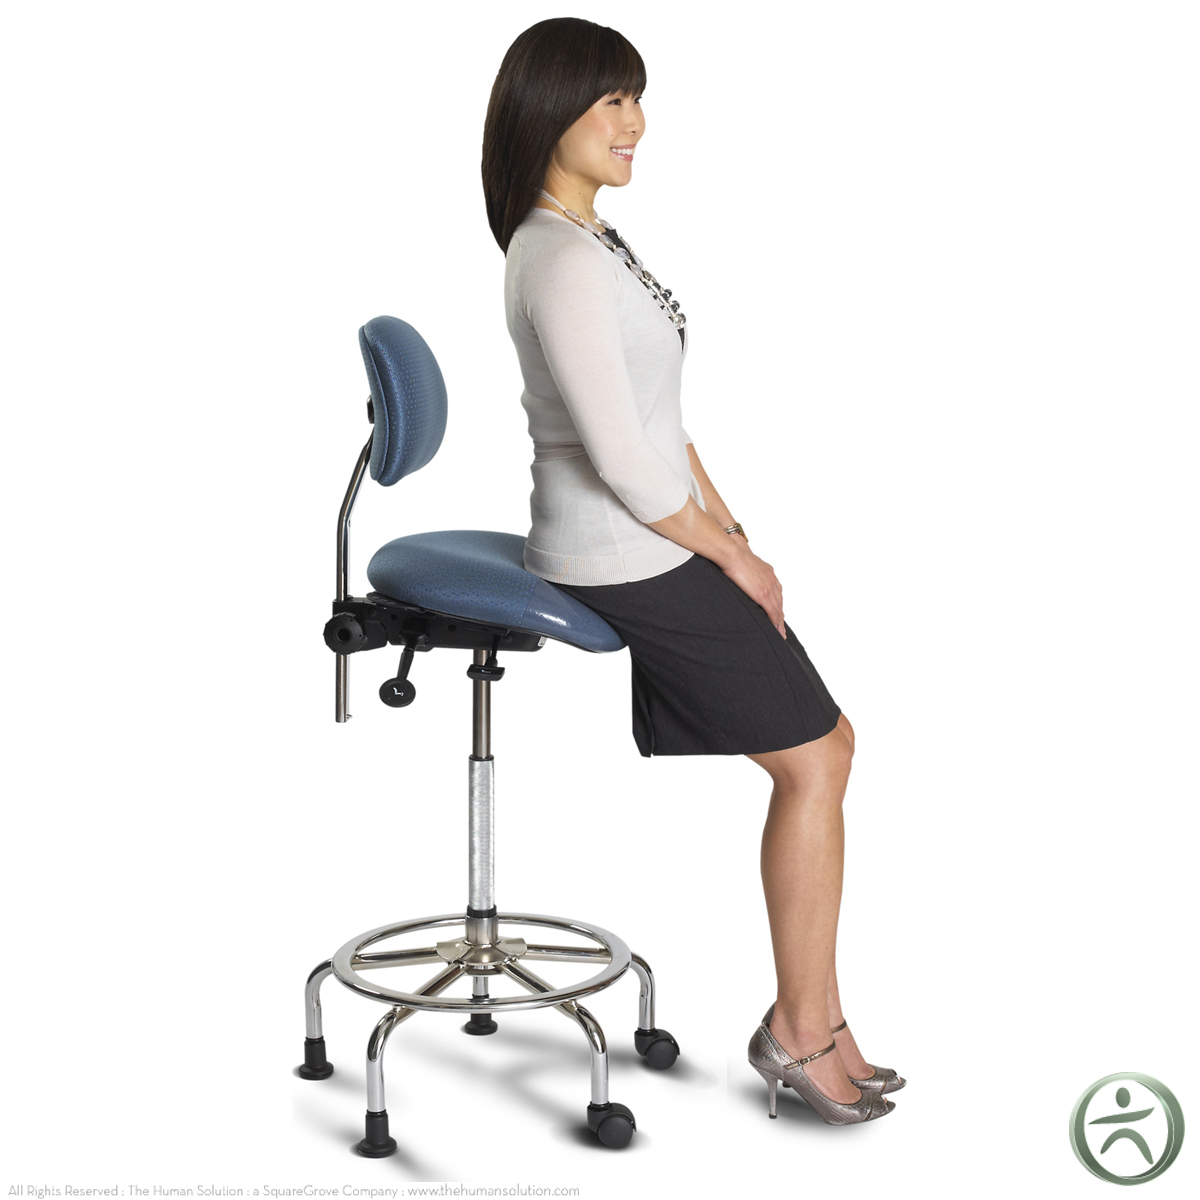 Ergocentric 3 in 1 sit stand stool shop ergocentric chairs for Sitting chairs